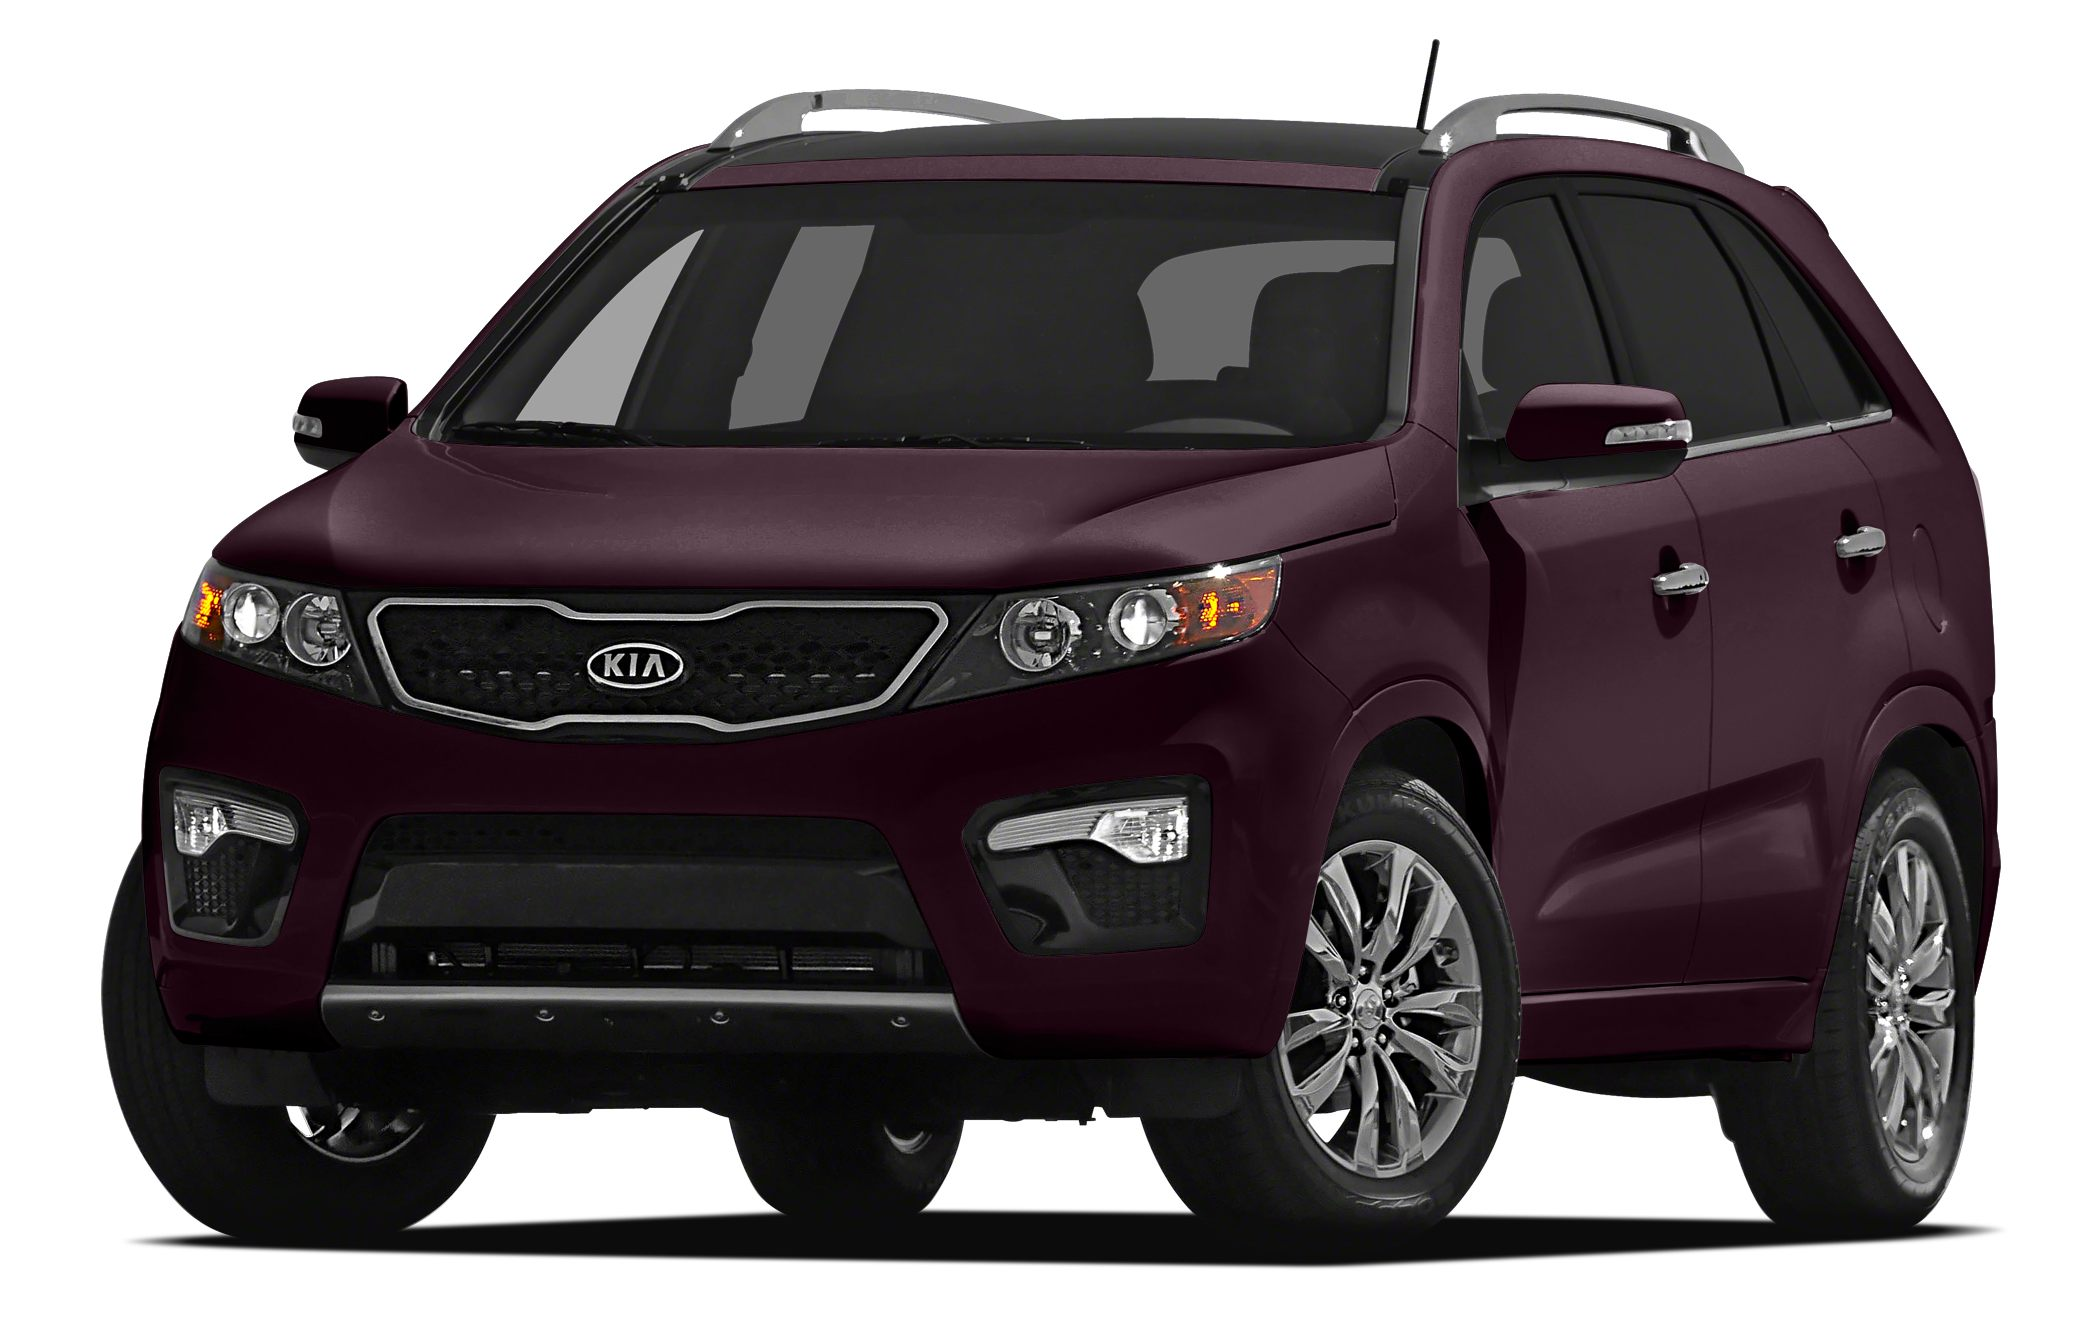 2013 Kia Sorento SX Vehicle Detailed Recent Oil Change and Passed Dealer Inspection Oh yeah Po